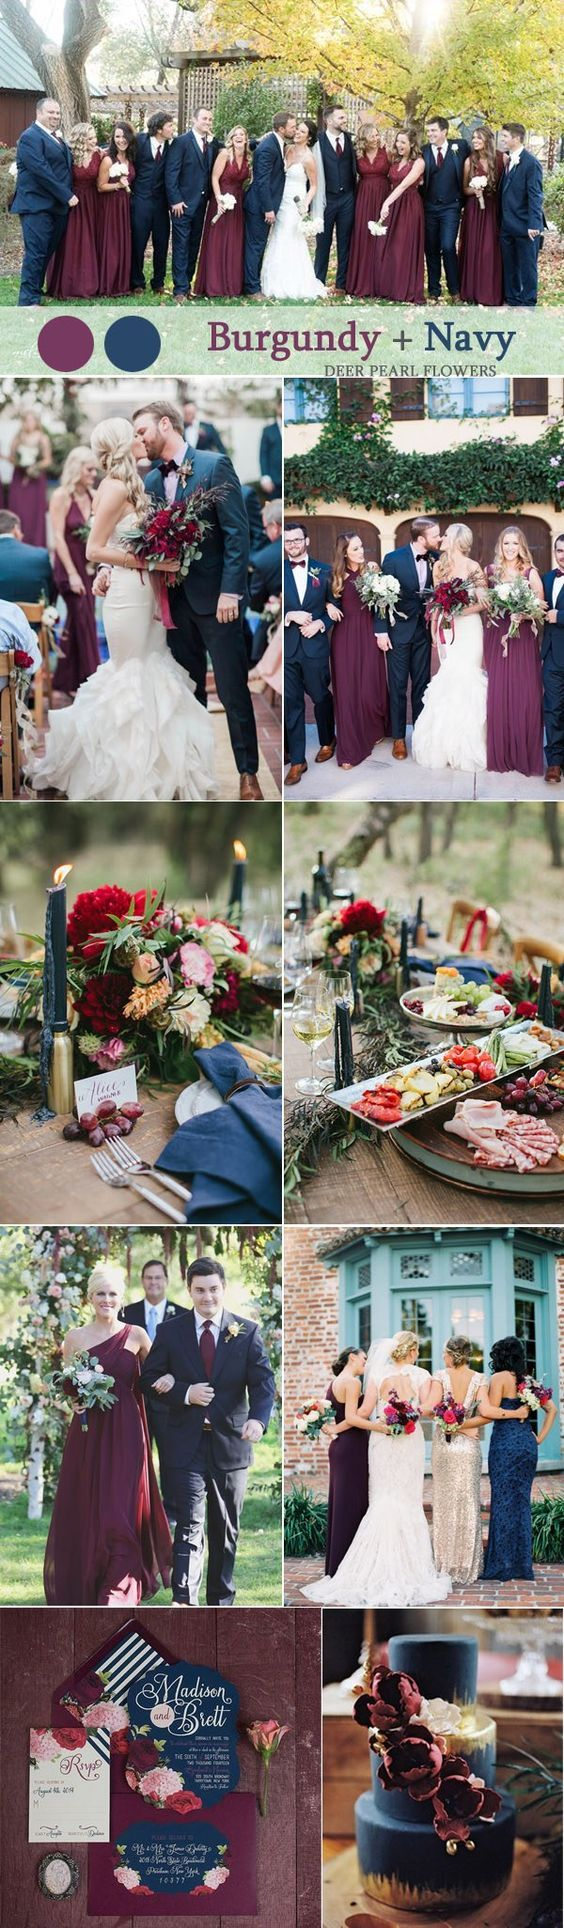 Burgundy and gold fall weuding color ideas / http://www.deerpearlflowers.com/burgundy-and-navy-wedding-color-ideas/